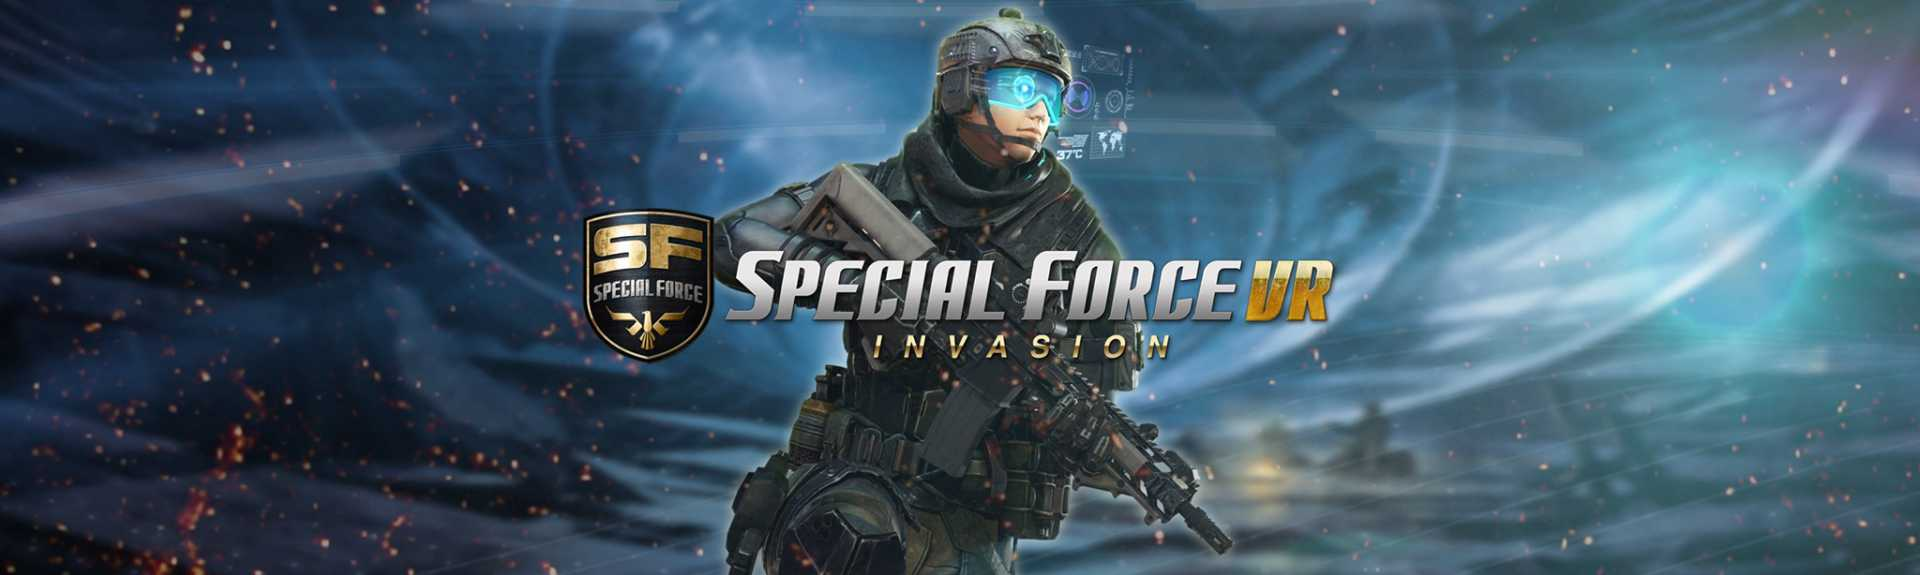 Special Force VR : INVASION